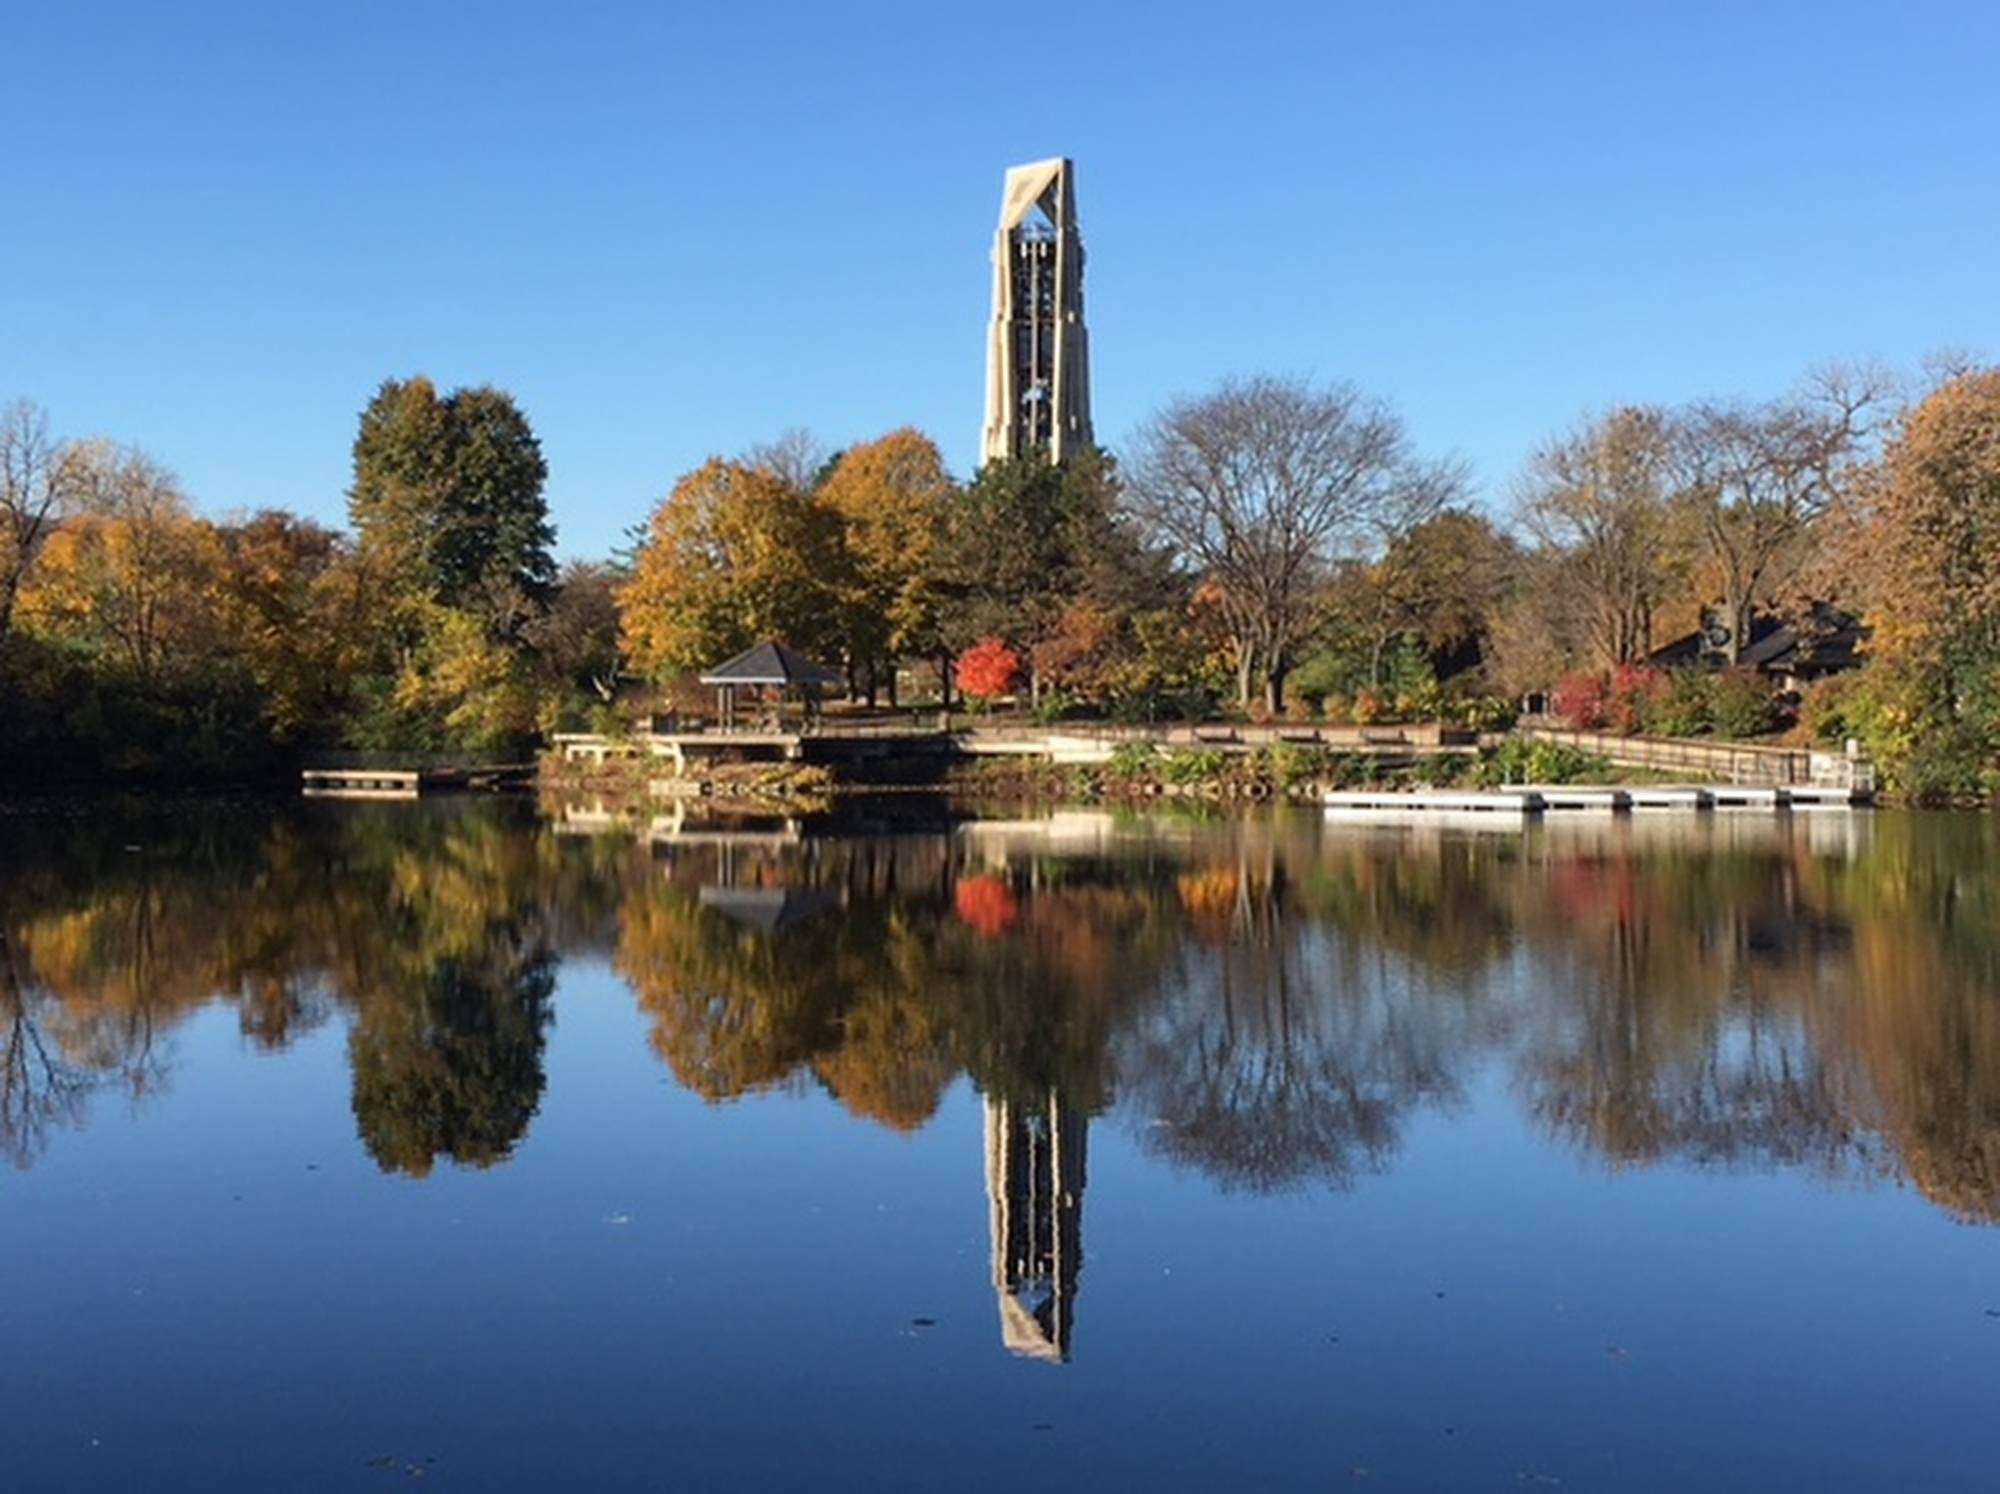 Using my iPhone 6, I took this picture of the carillon in downtown Naperville on a glorious November day. I love the perfect symmetry of the sky and the water. Such a clear day!